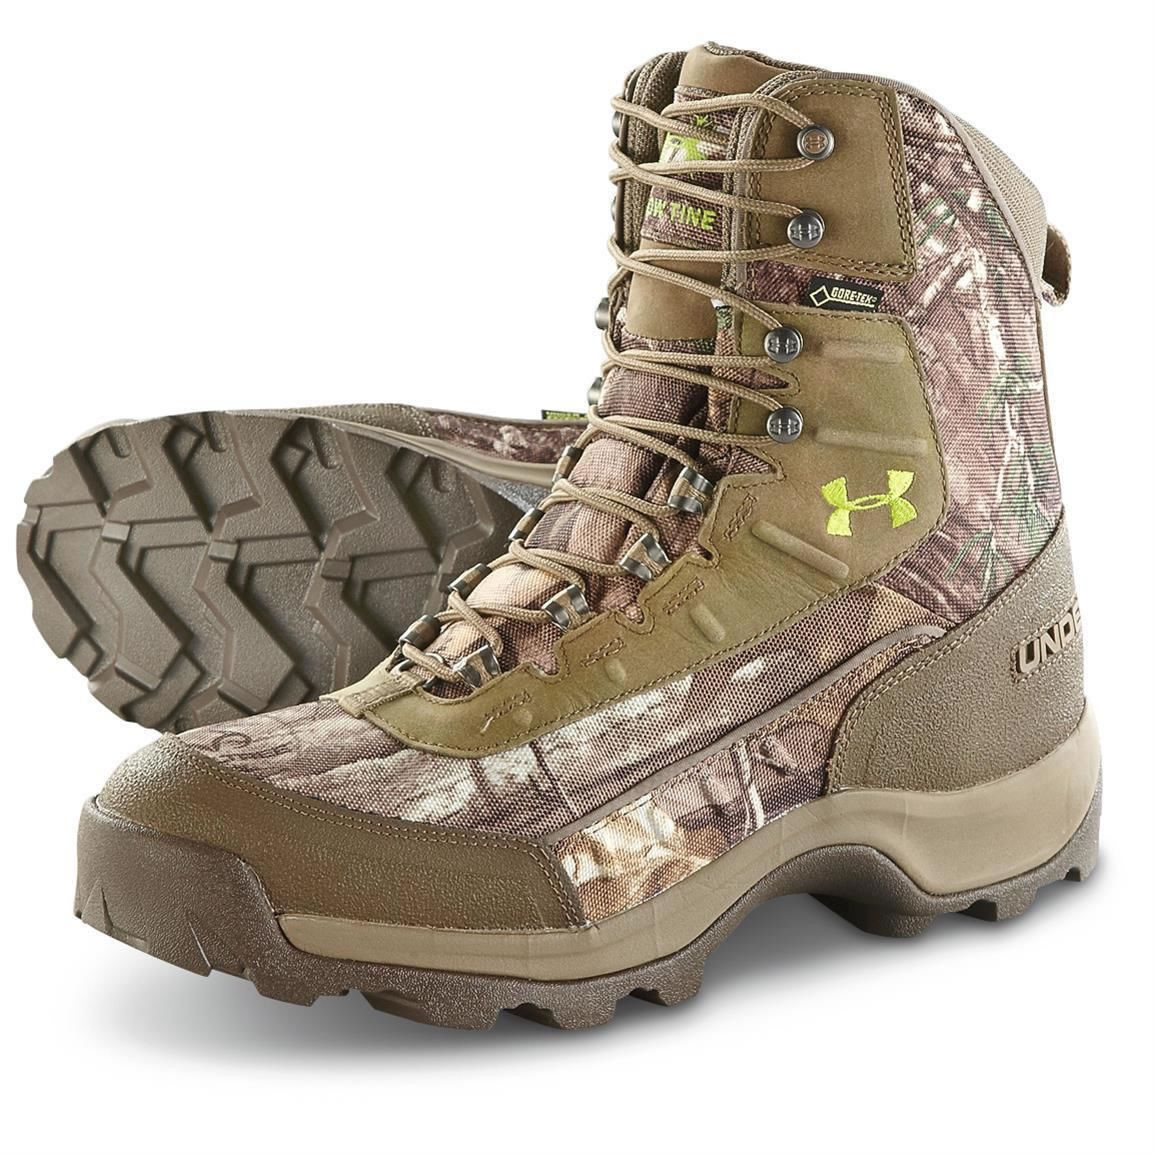 ae1ae0e5124 Under Armour Men's Brow Tine Insulated Hunting Boots Realtree Xtra Camo 800  Gram